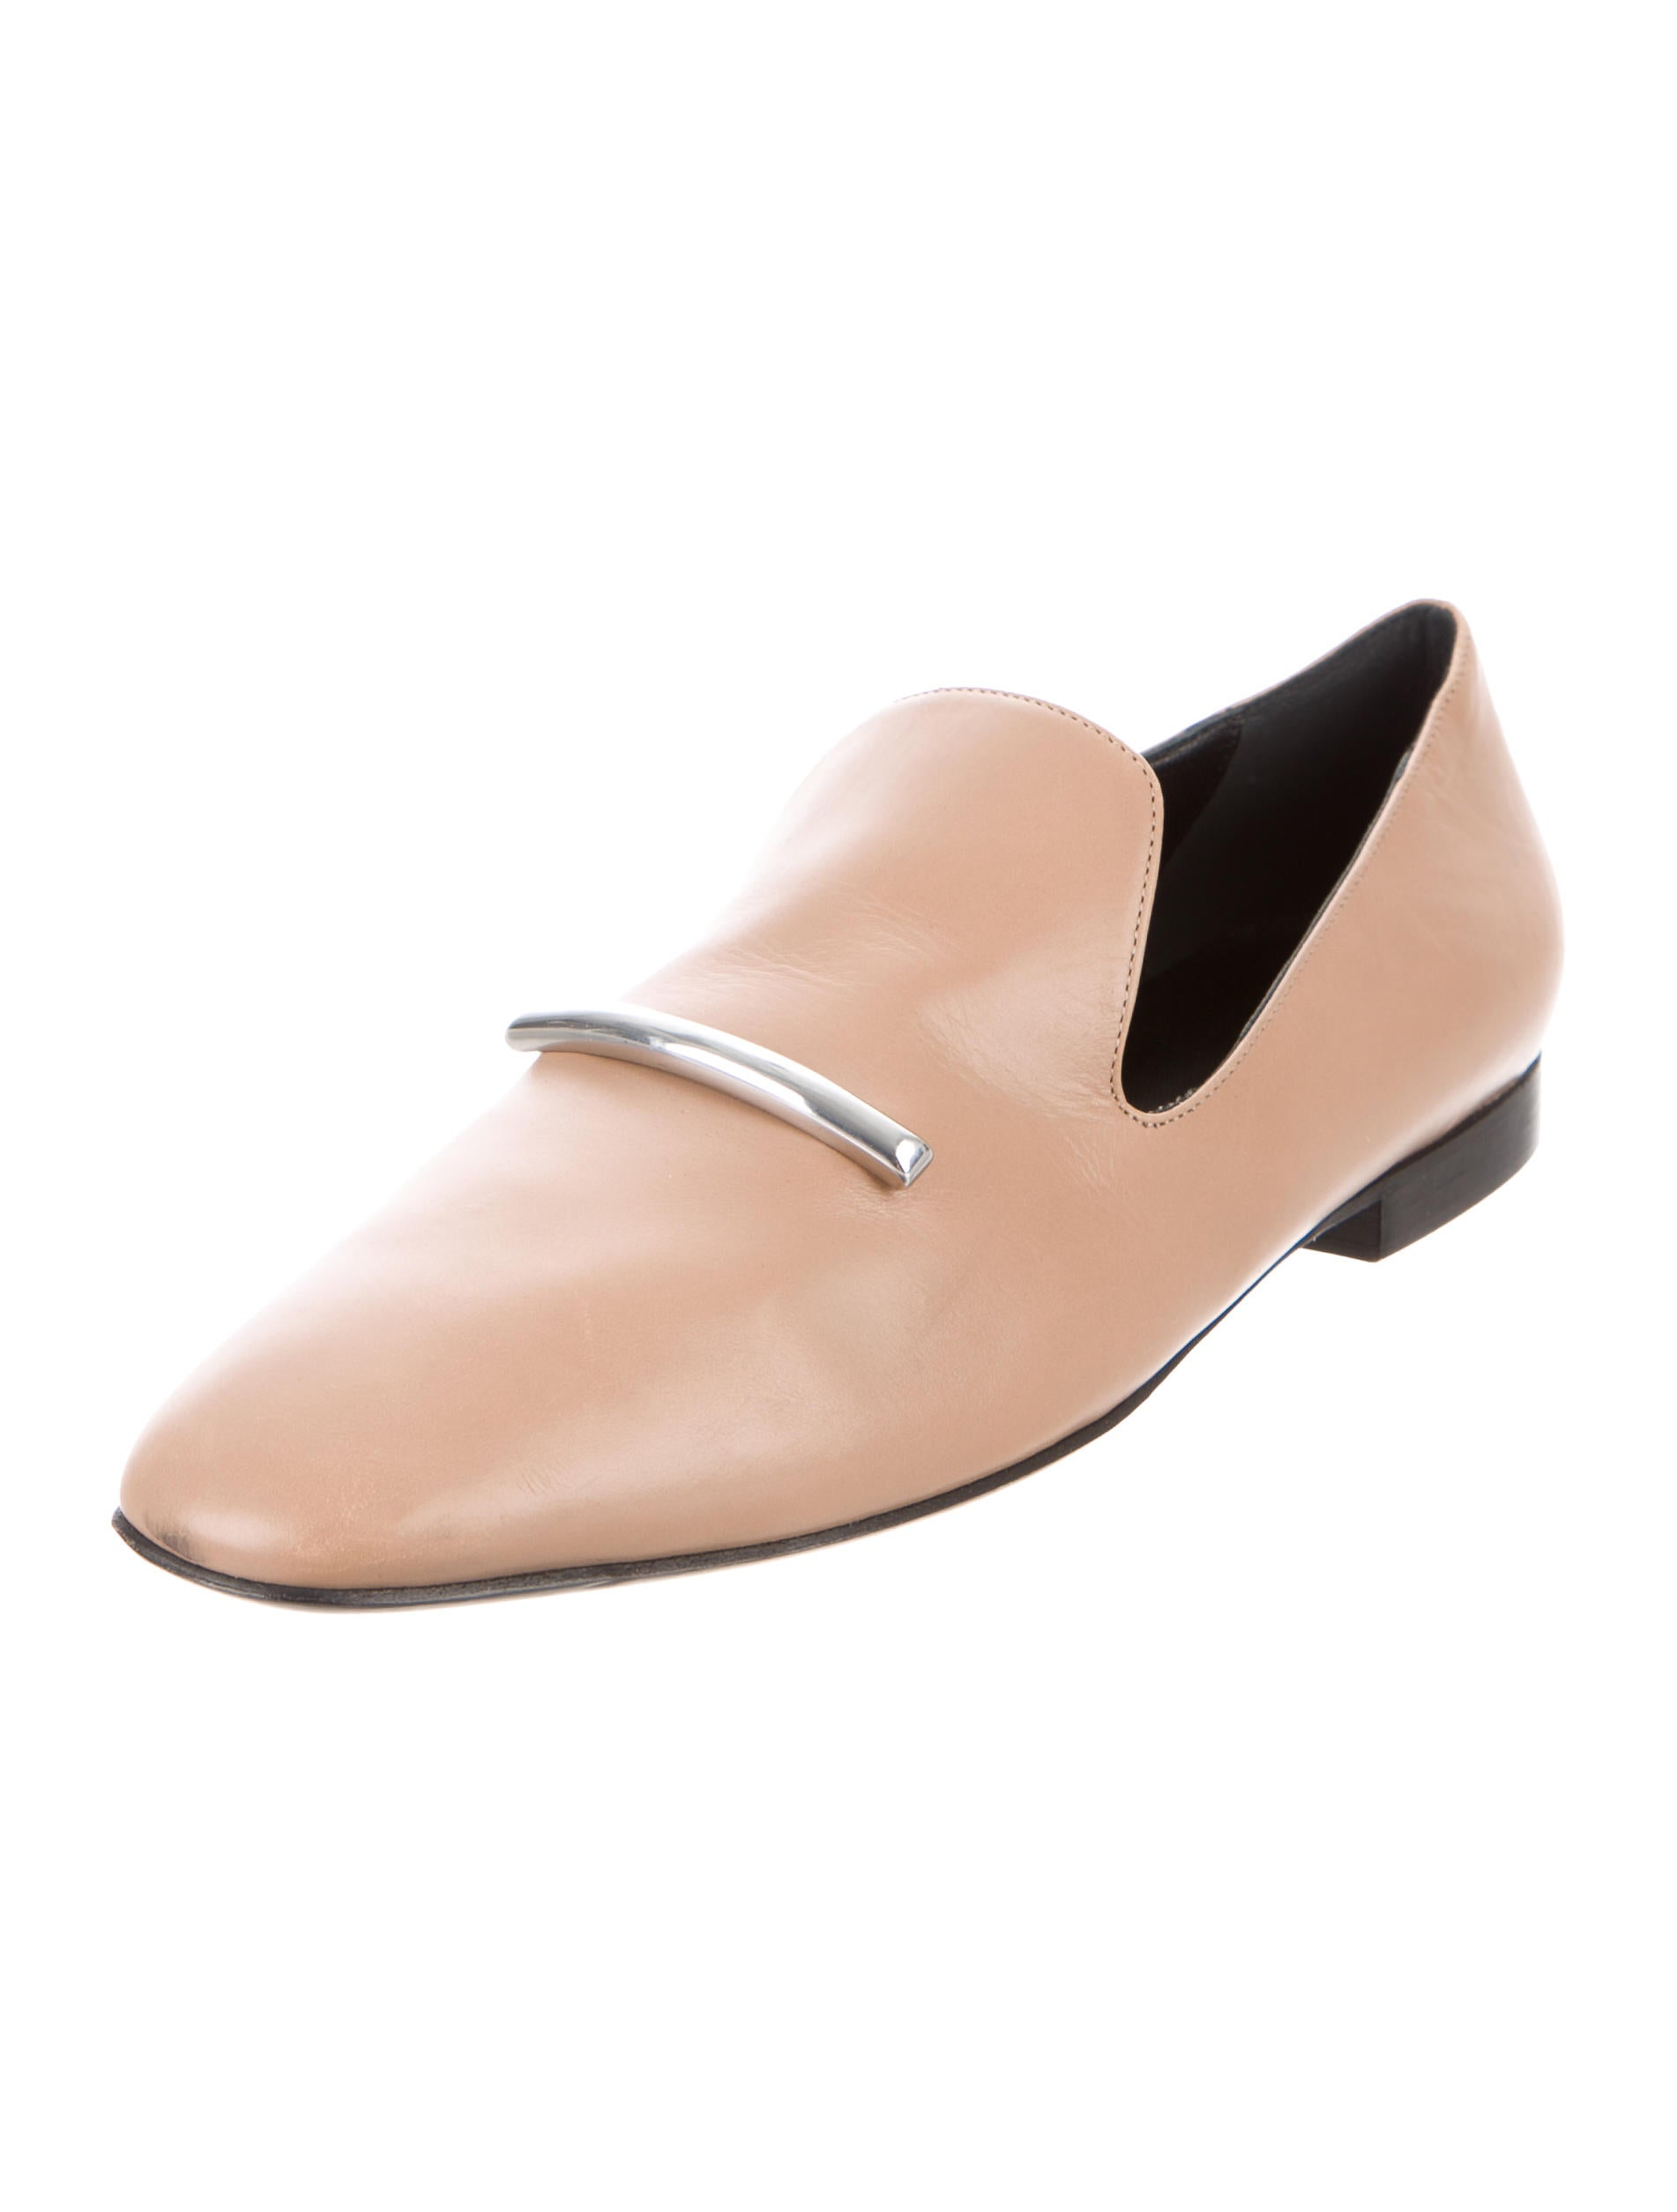 Via Spiga Leather Semi-Square-Toe Loafers sale manchester great sale w0IgcS